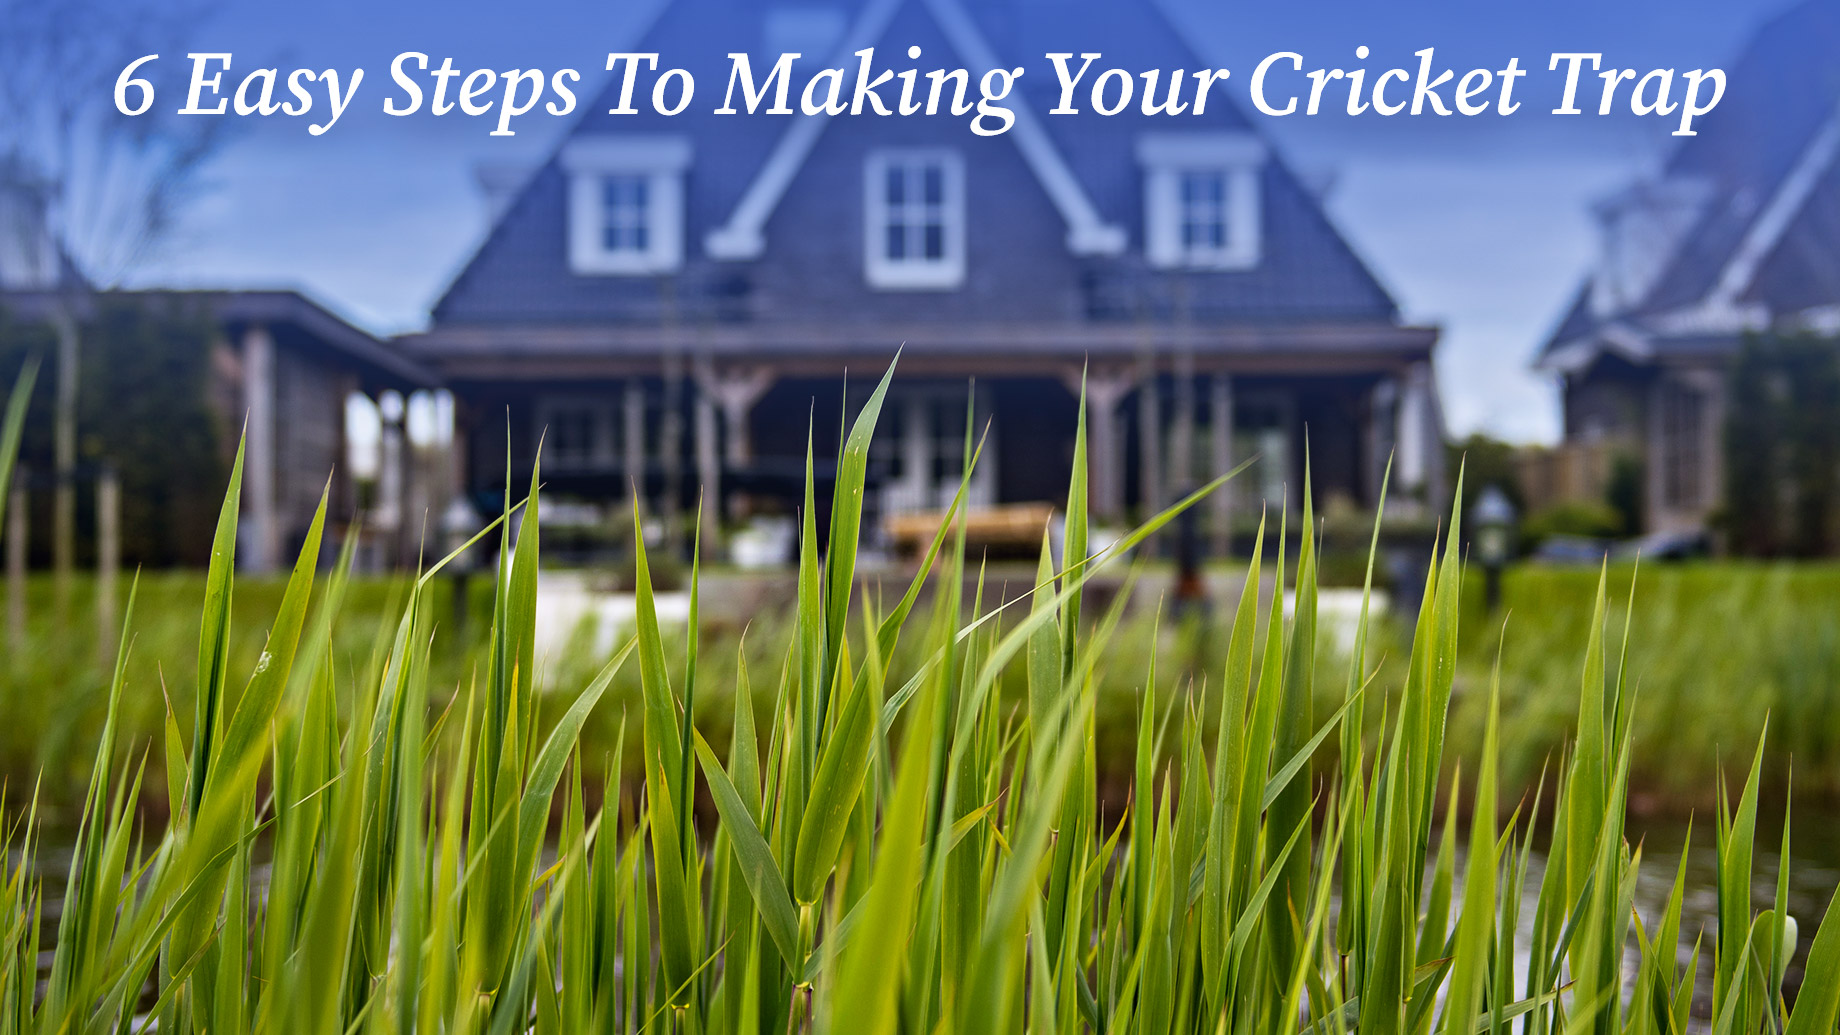 6 Easy Steps To Making Your Cricket Trap